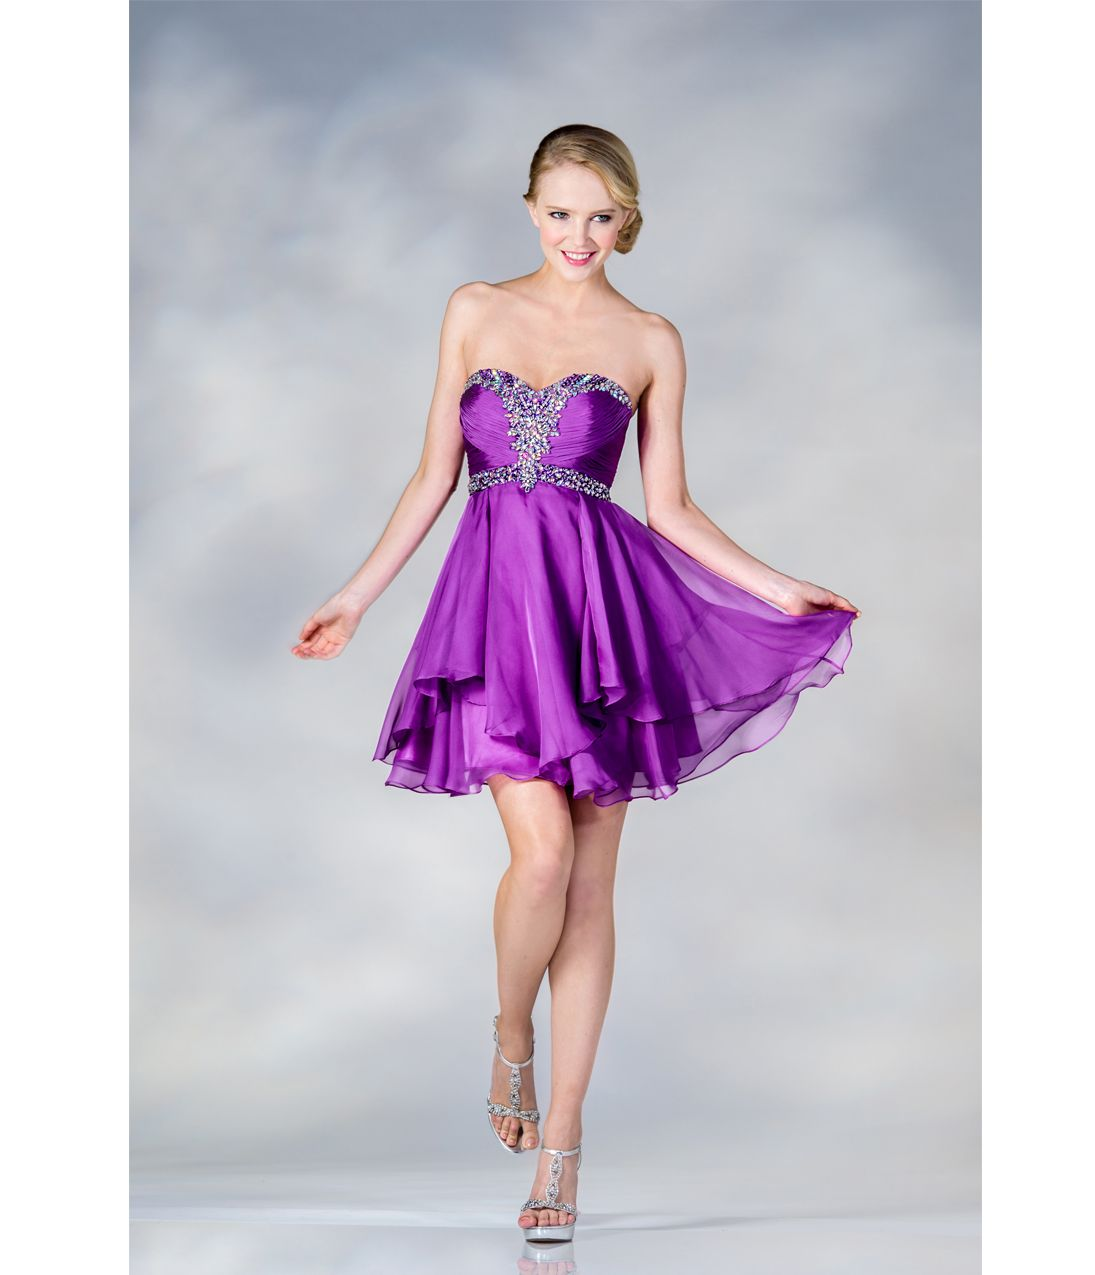 2017 Prom Dresses Light Purple Chiffon Sweetheart Short Dress Unique Vintage Tail